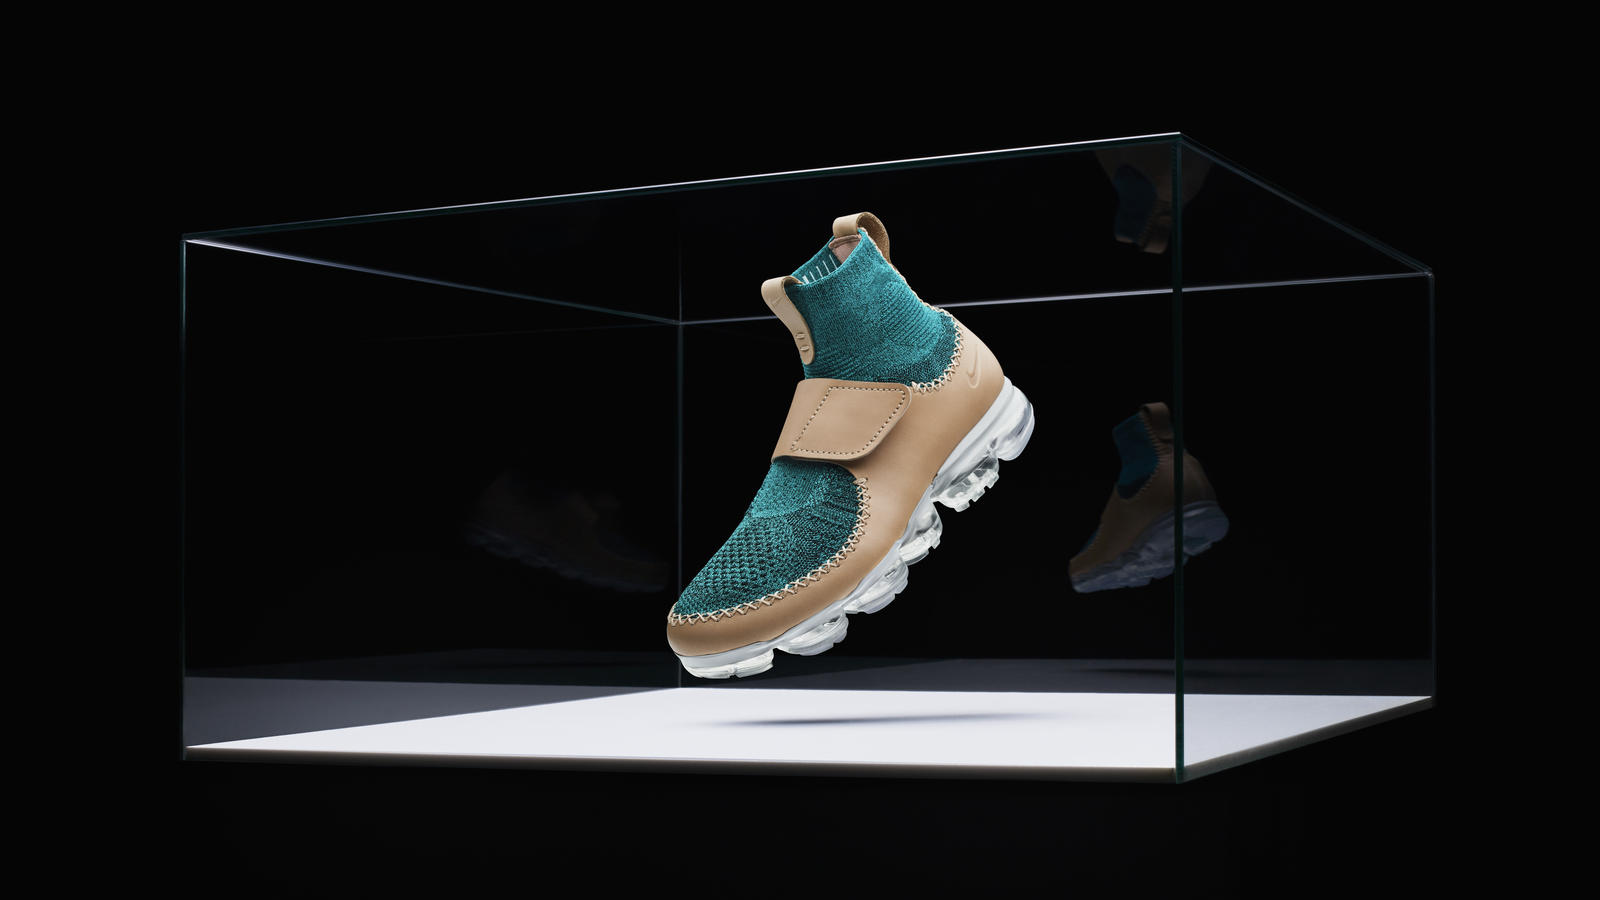 Nike Vapormax Float on Vimeo